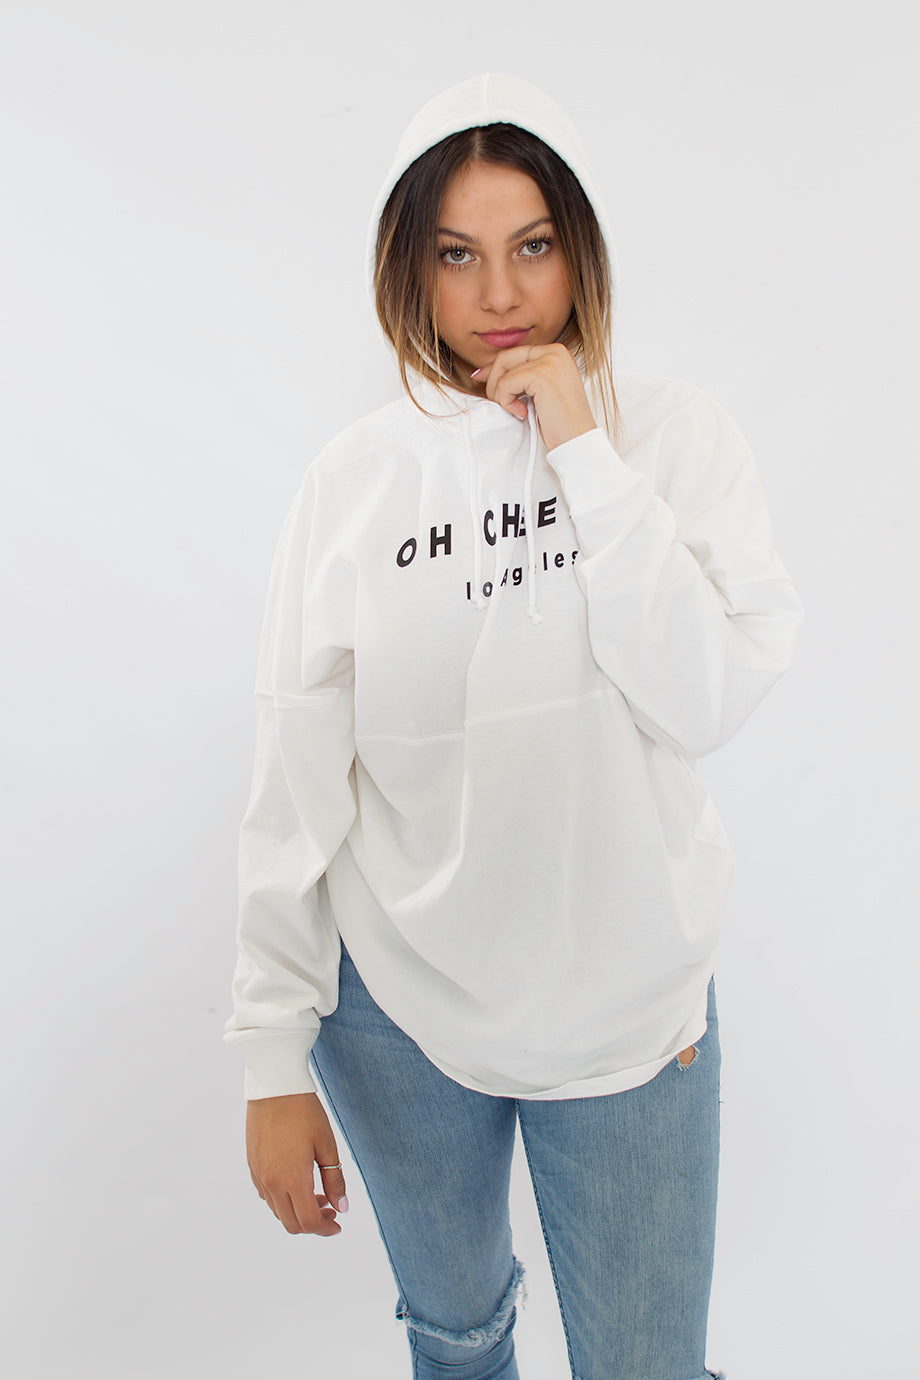 cheeky hoodie soccer los angeles oversized cotton men women